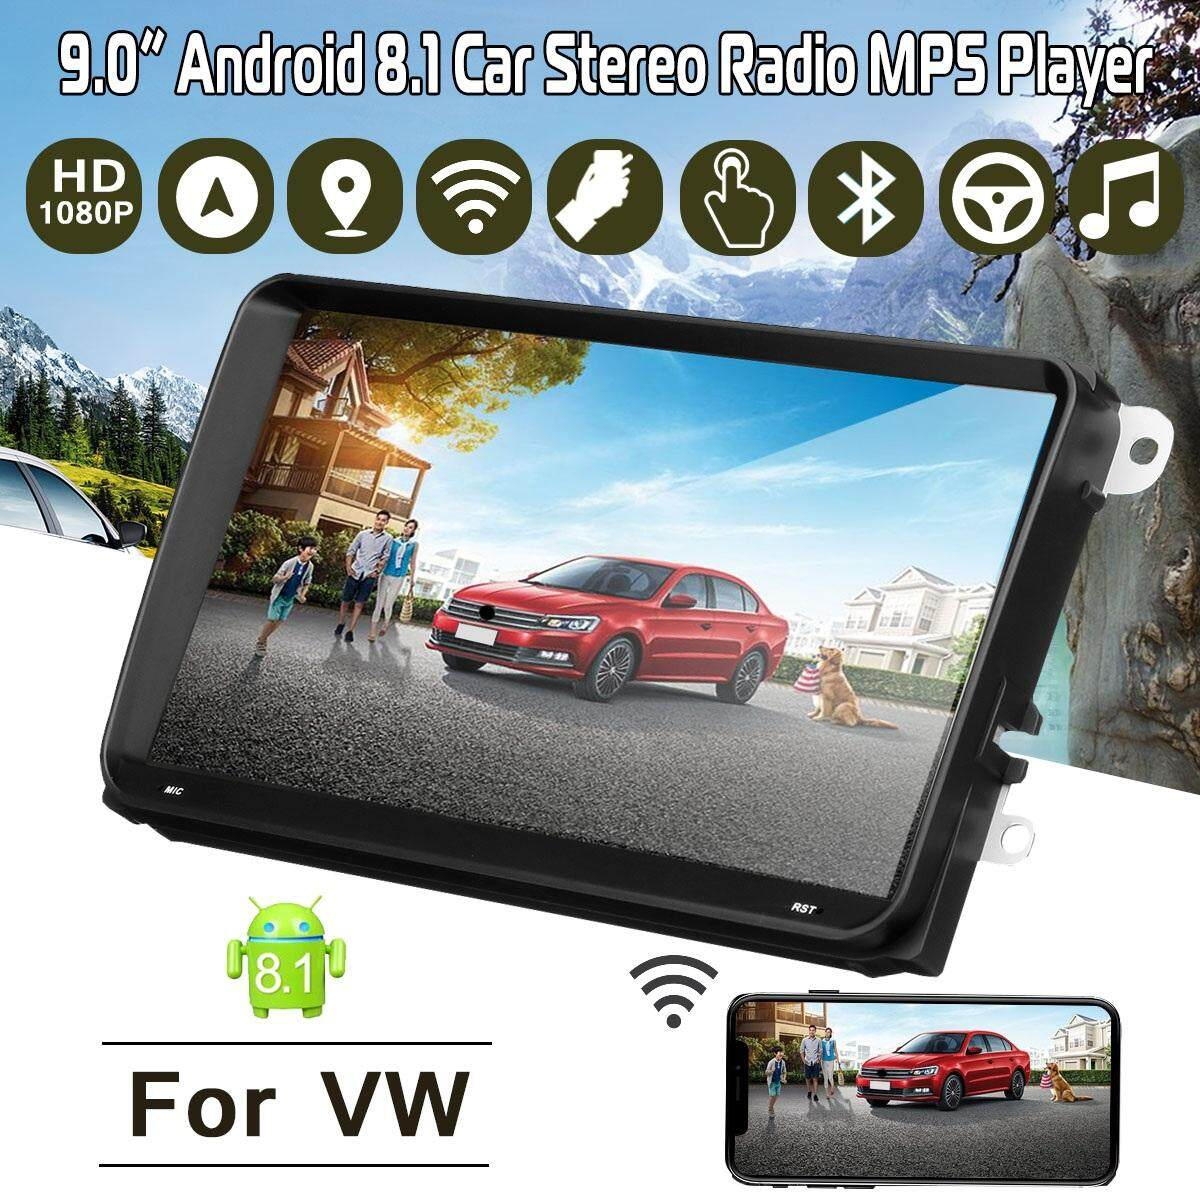 9 Android 8.1 Wifi Dab+ Dtv-In Navi Hd Mp5 Player Car Radio Stereo Gps For Vw By Haldis.